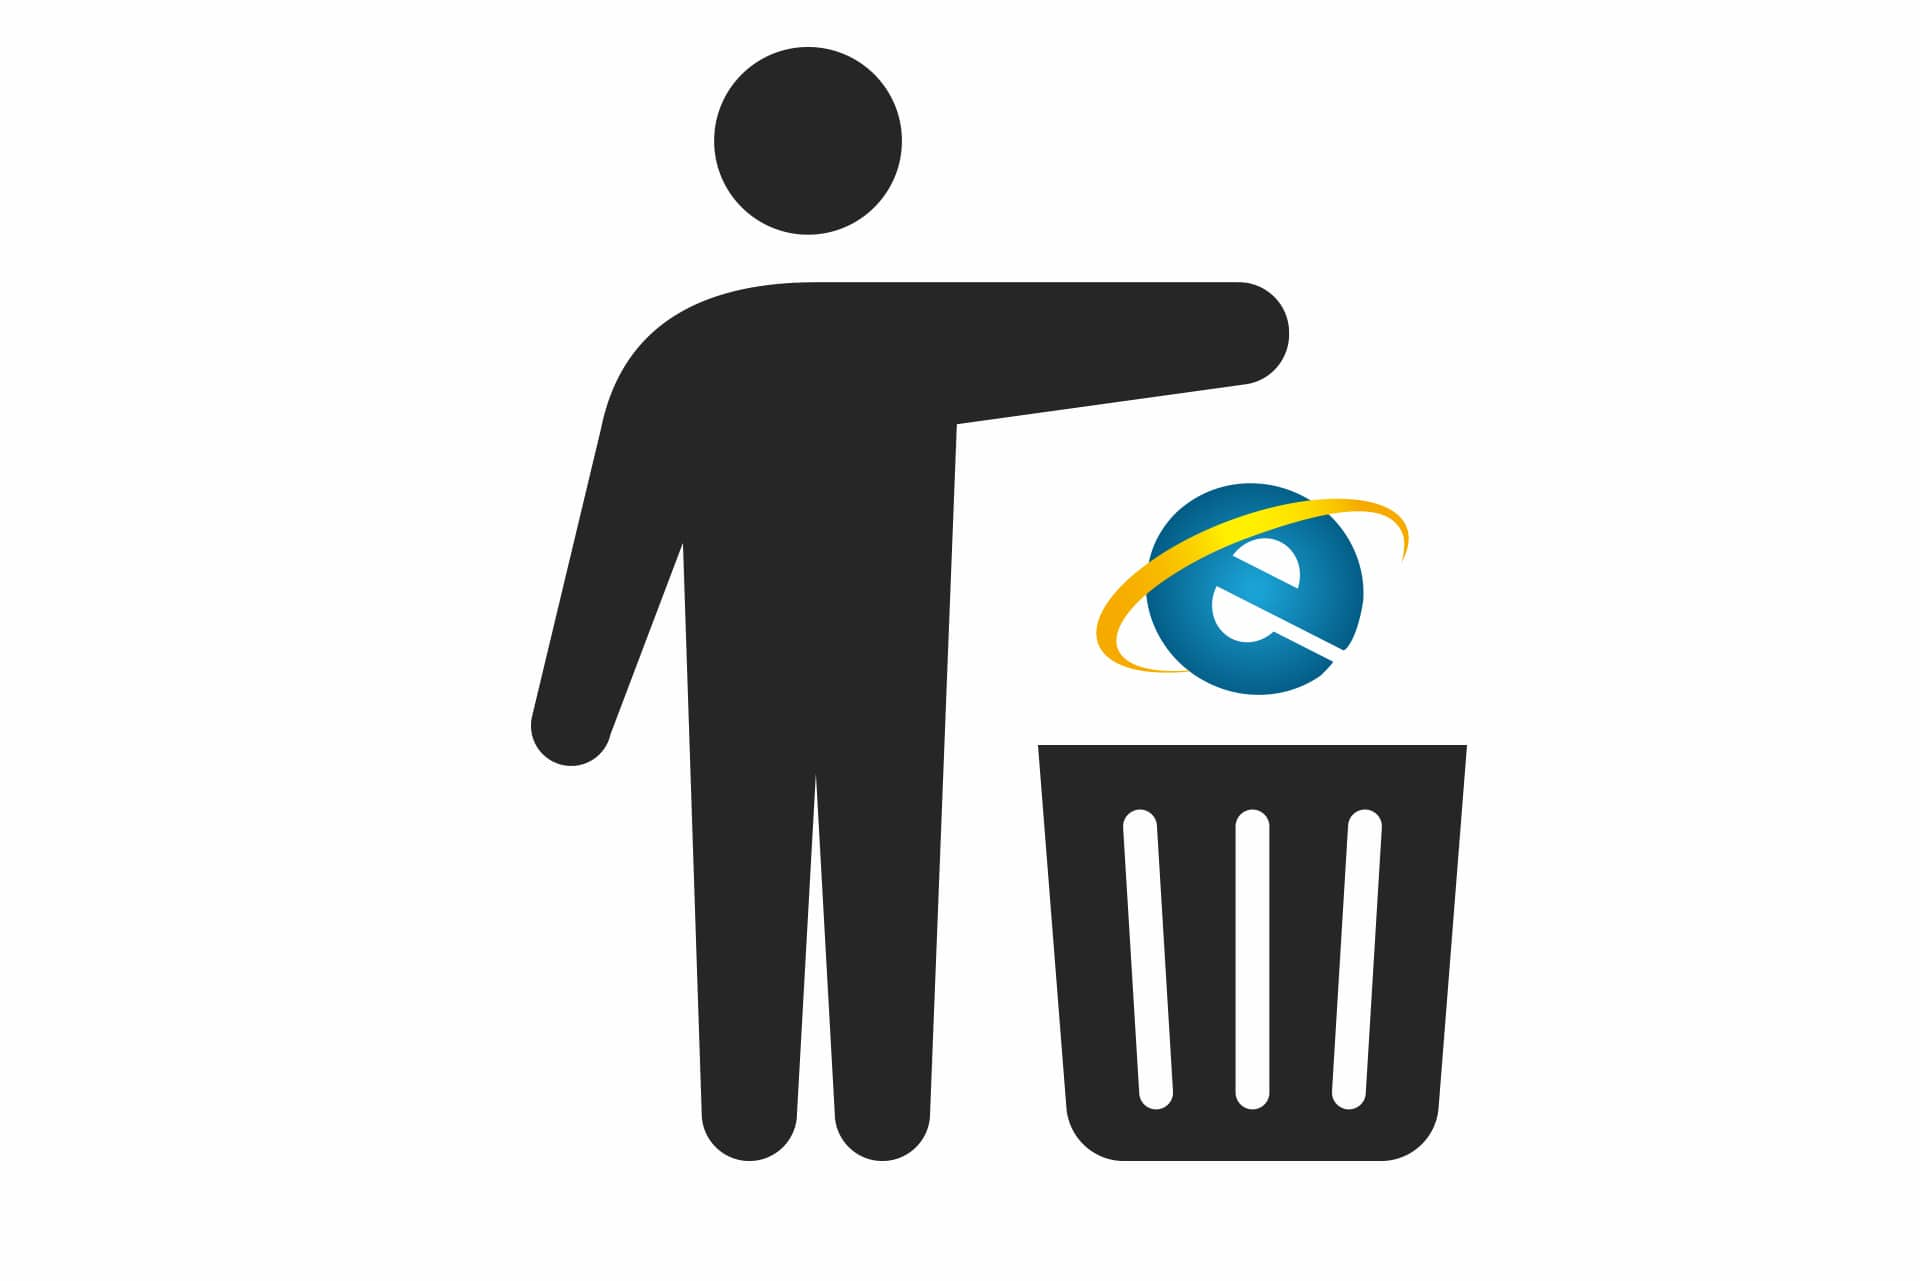 IE Trash